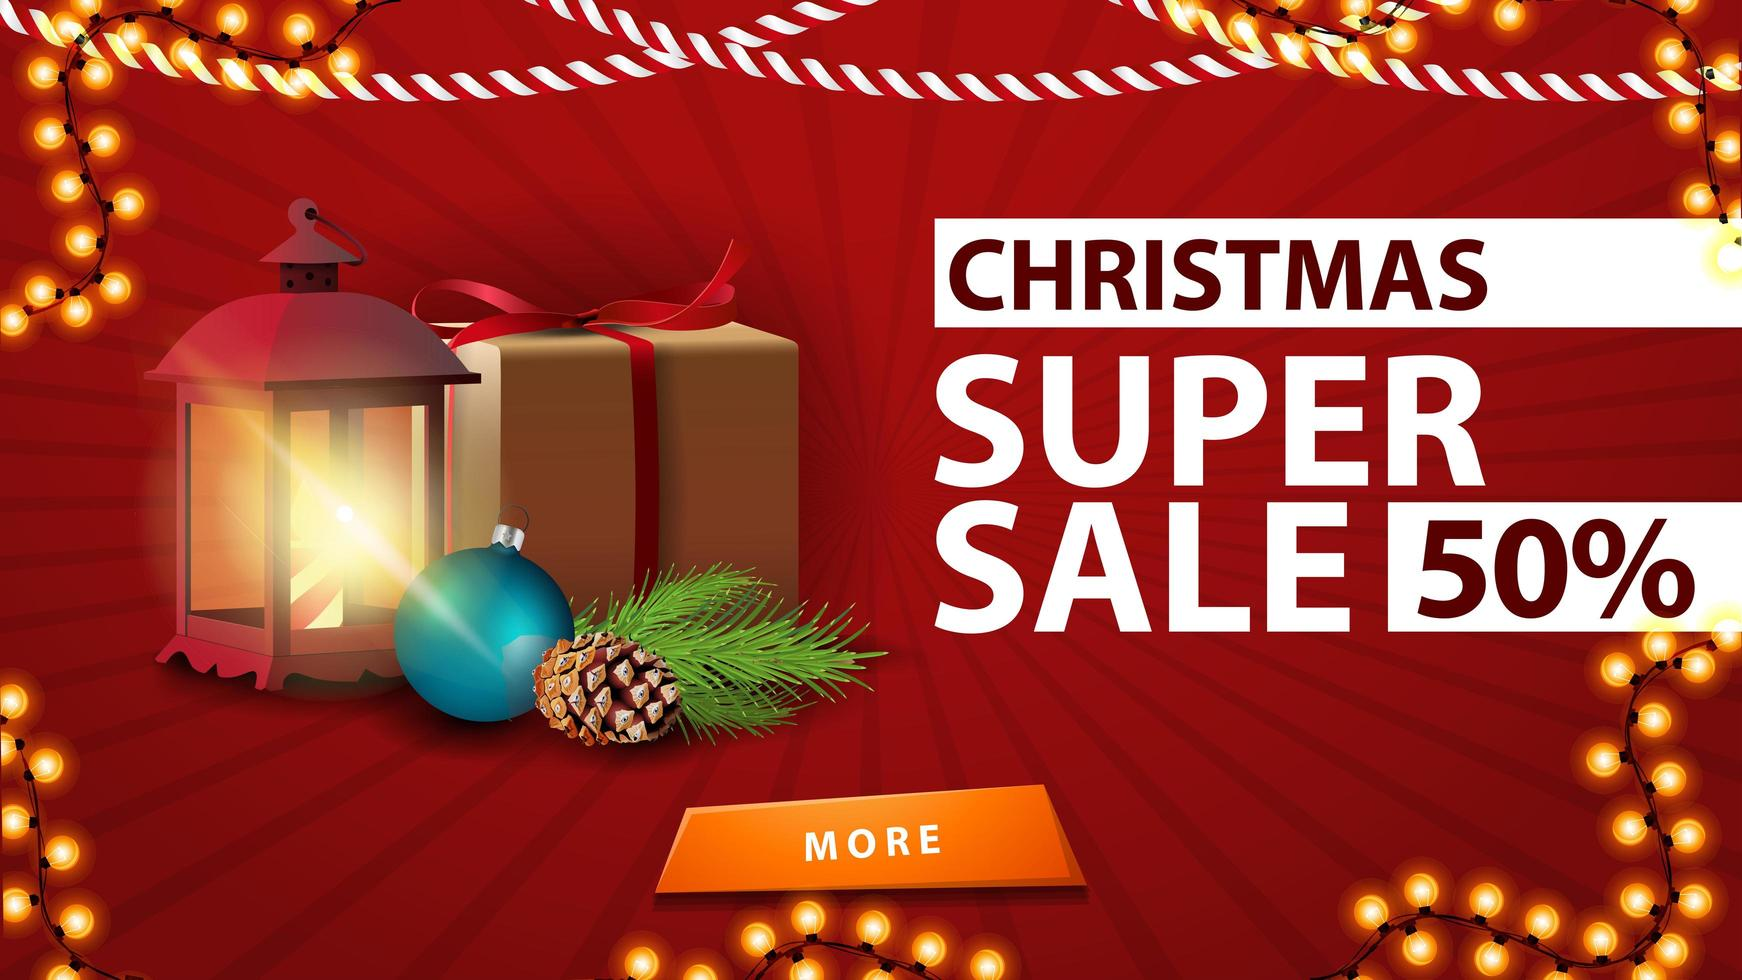 Christmas super sale, red discount banner with gift, antique lamp, Christmas tree branch, cone, Christmas ball vector